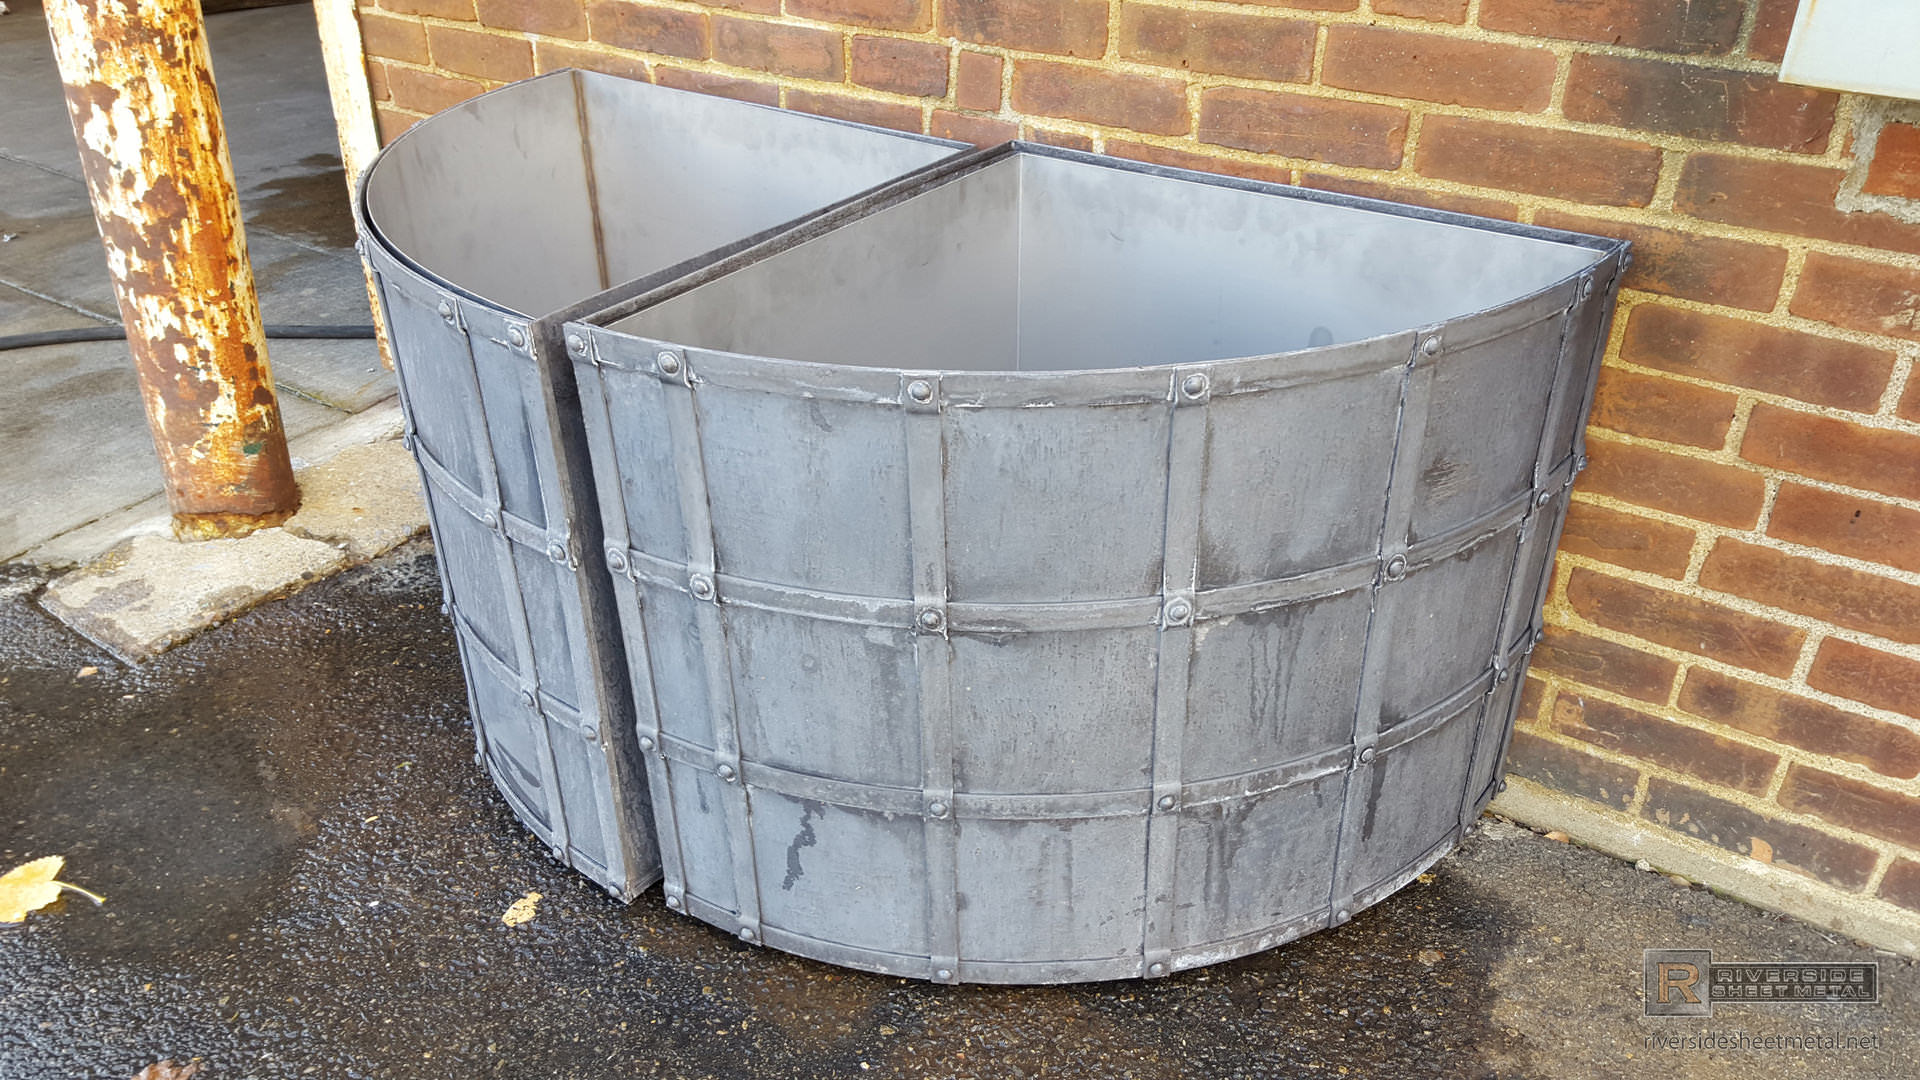 Dark Patina Lead Coated Copper Planters With Grate And Rivets